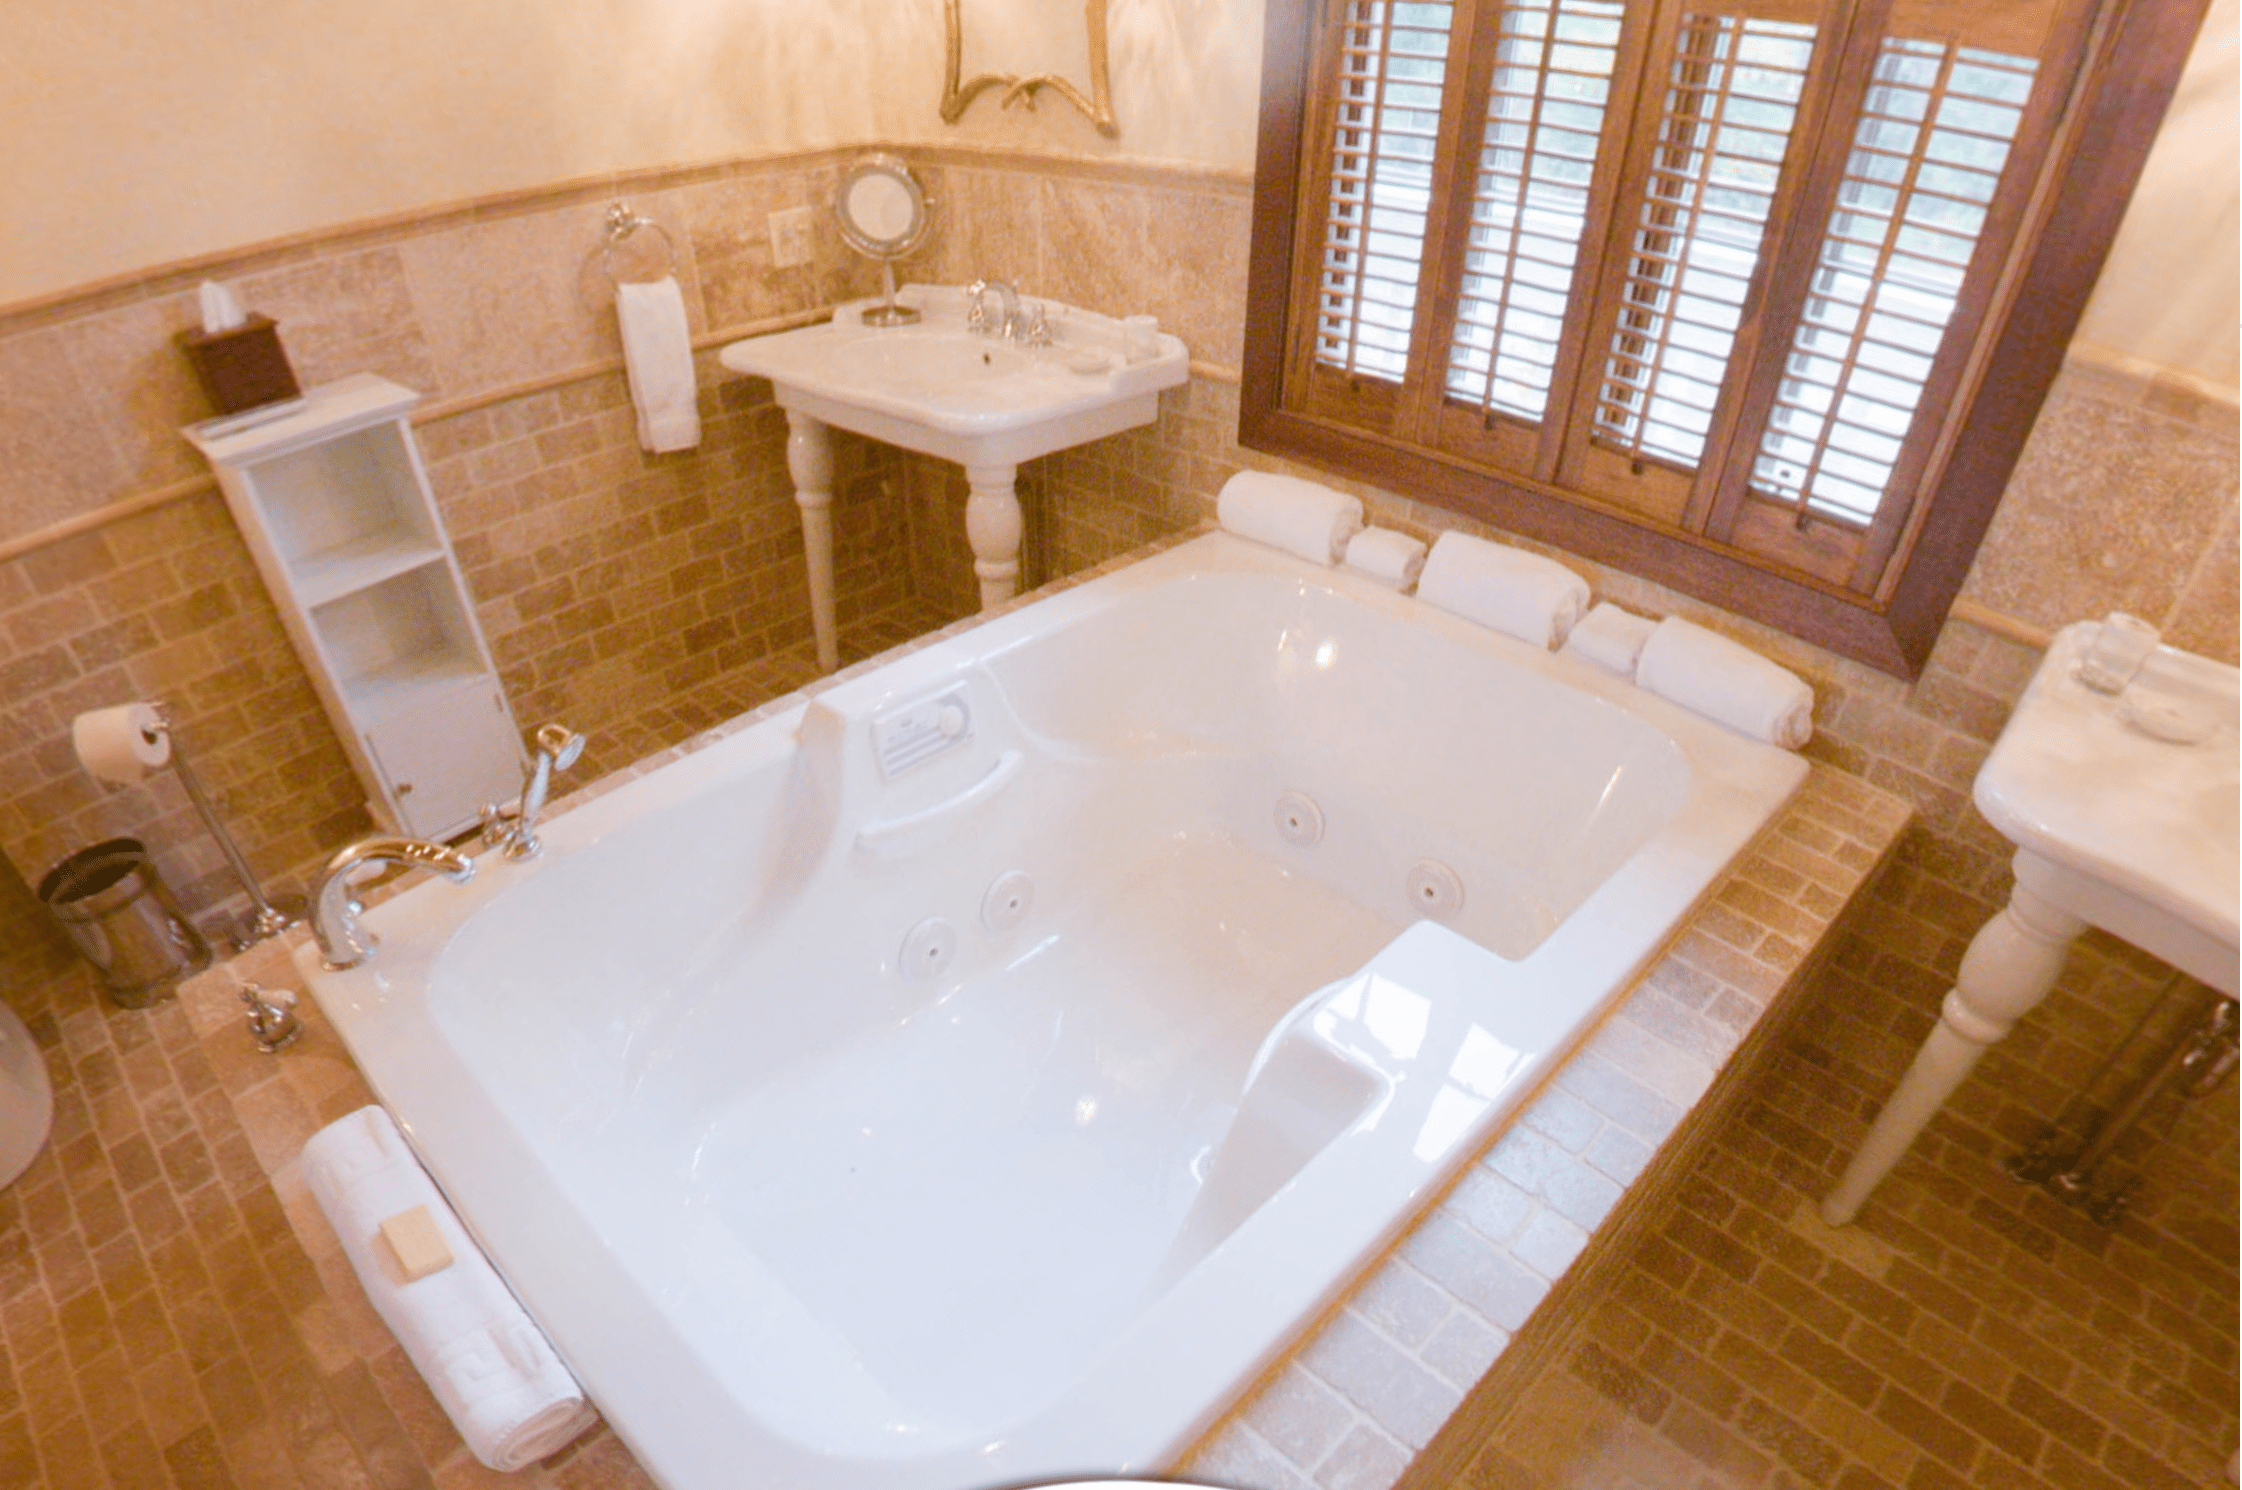 Hotels With Big Bathtubs For Traveling Couples